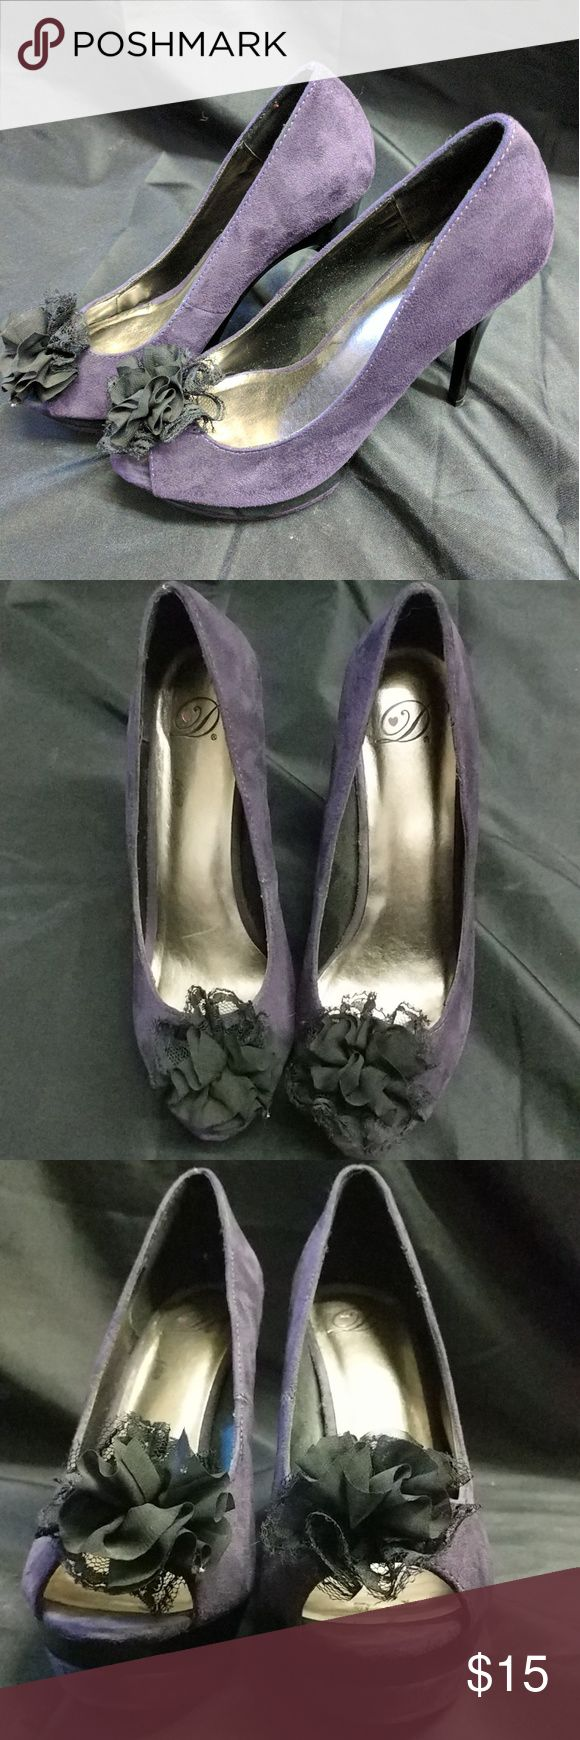 Purple Faux Suede Peep Toe Pumps These heels have only been worn once. They look brand new. They feature a purple faux suede fabric, a black lace flower details, and open toes. Shoes Heels